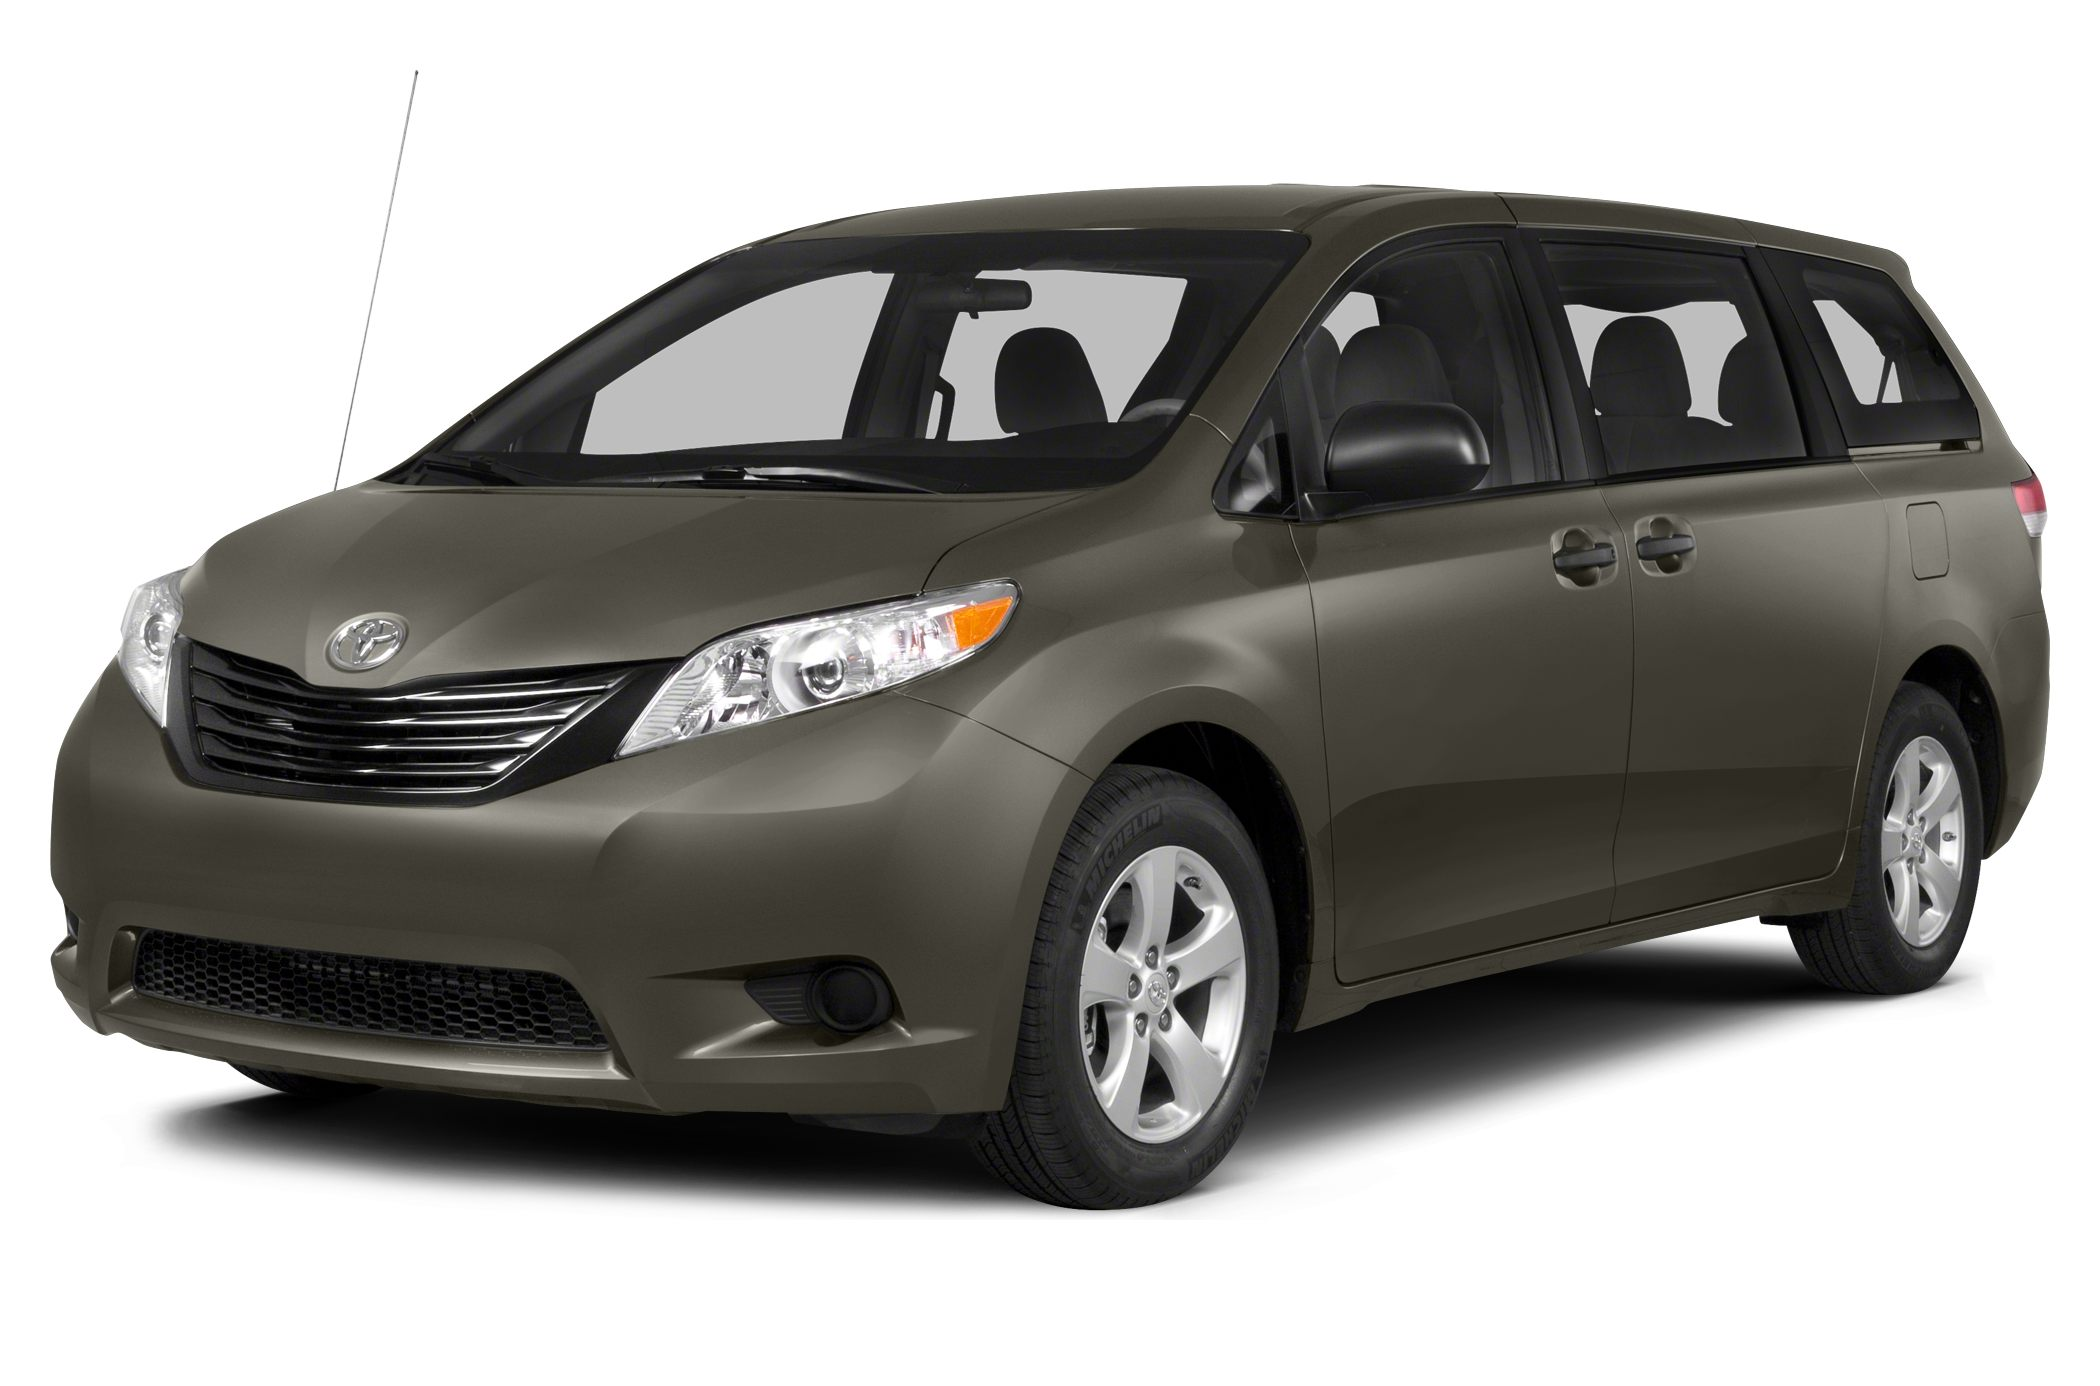 2014 Toyota Sienna XLE 8 Passenger OUR PRICESYoure probably wondering why our prices are so much